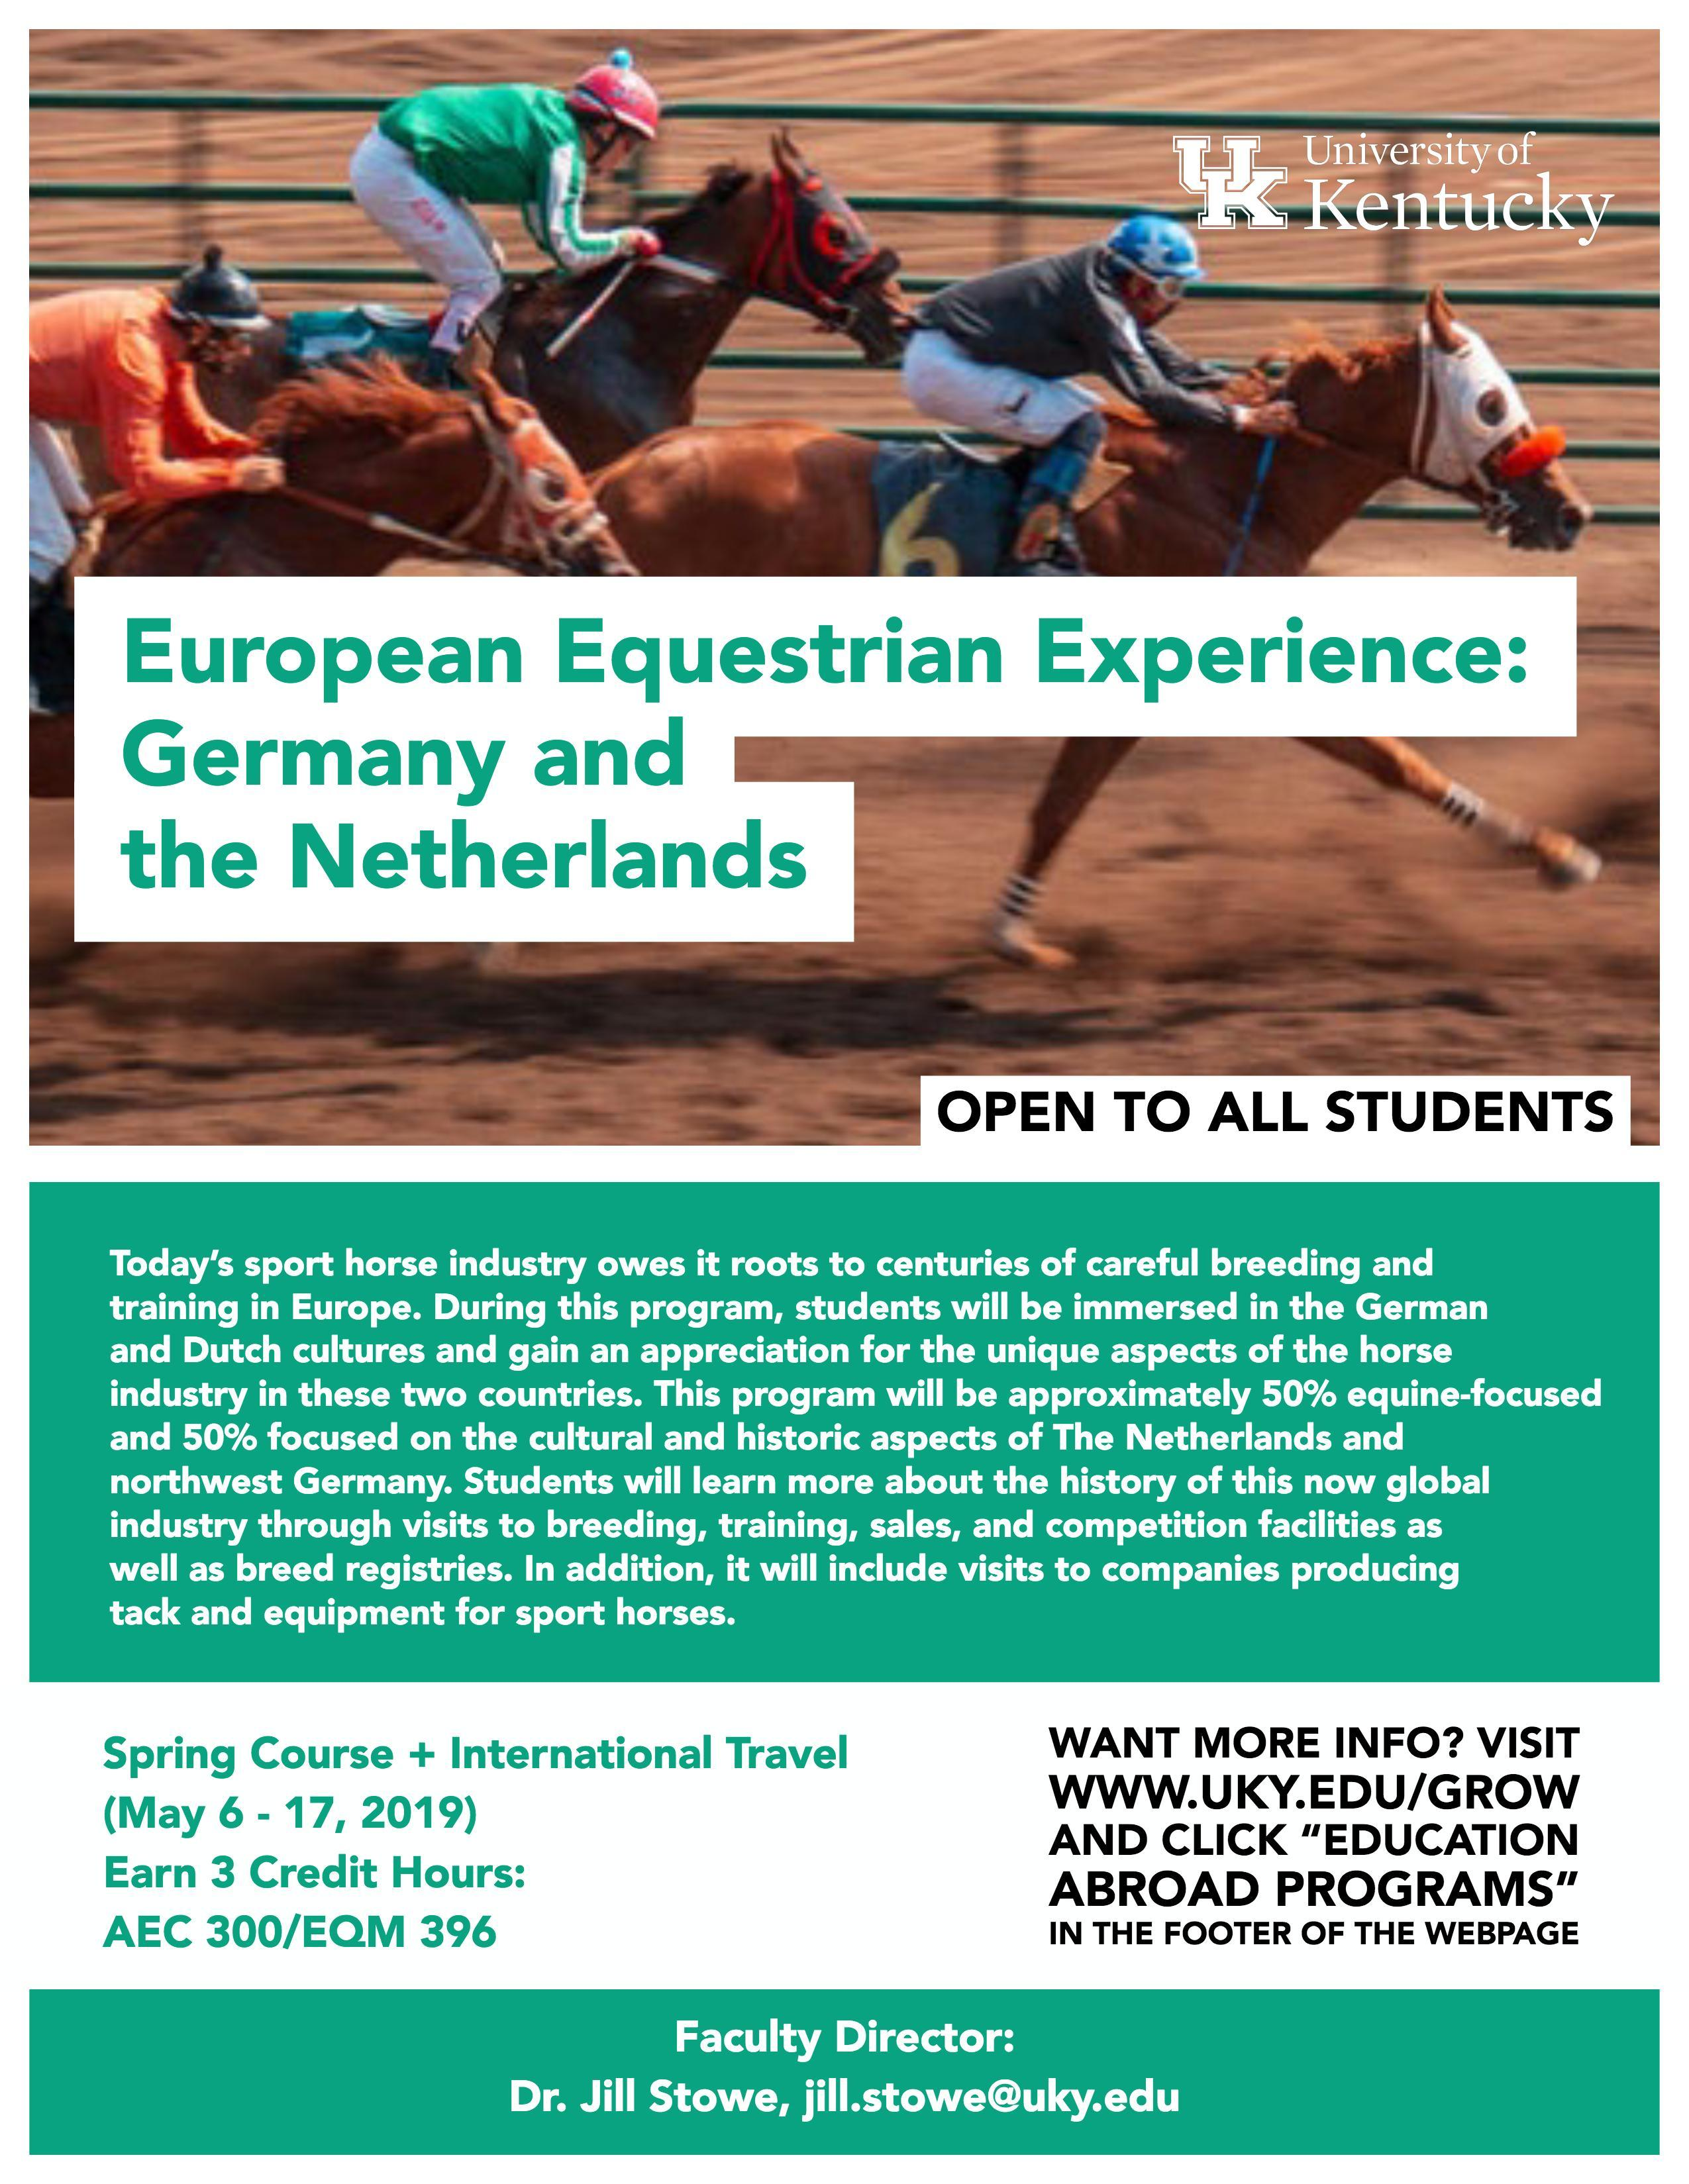 European Equestrian Experience:  Germany and the Netherlands